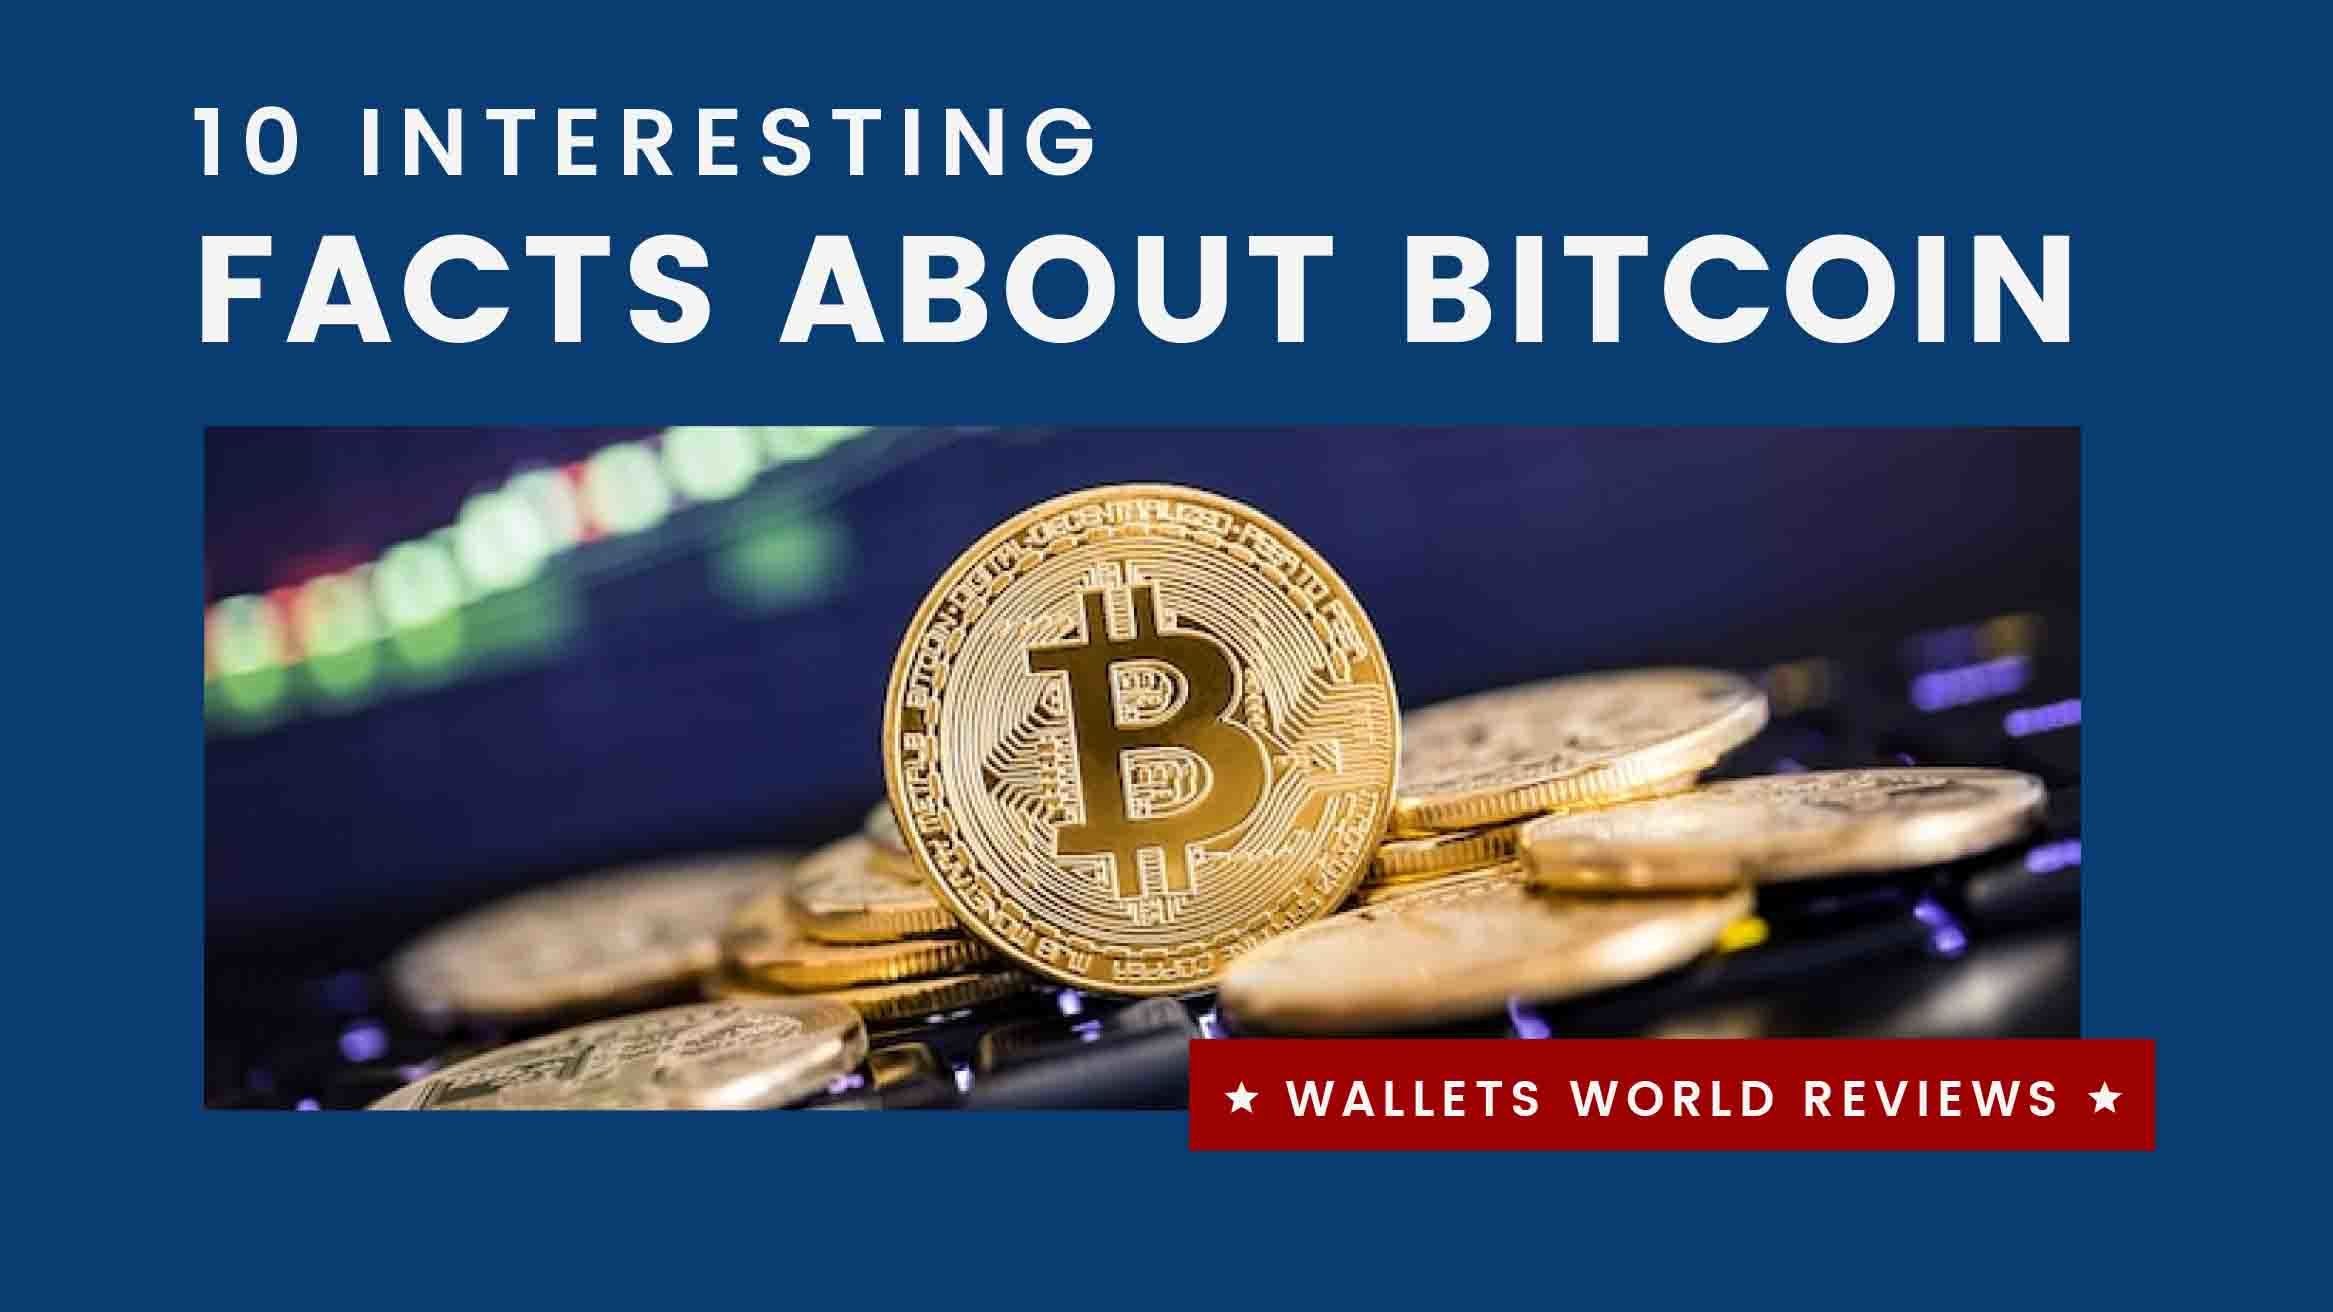 10 Interesting Facts About Bitcoin - 99 Insights